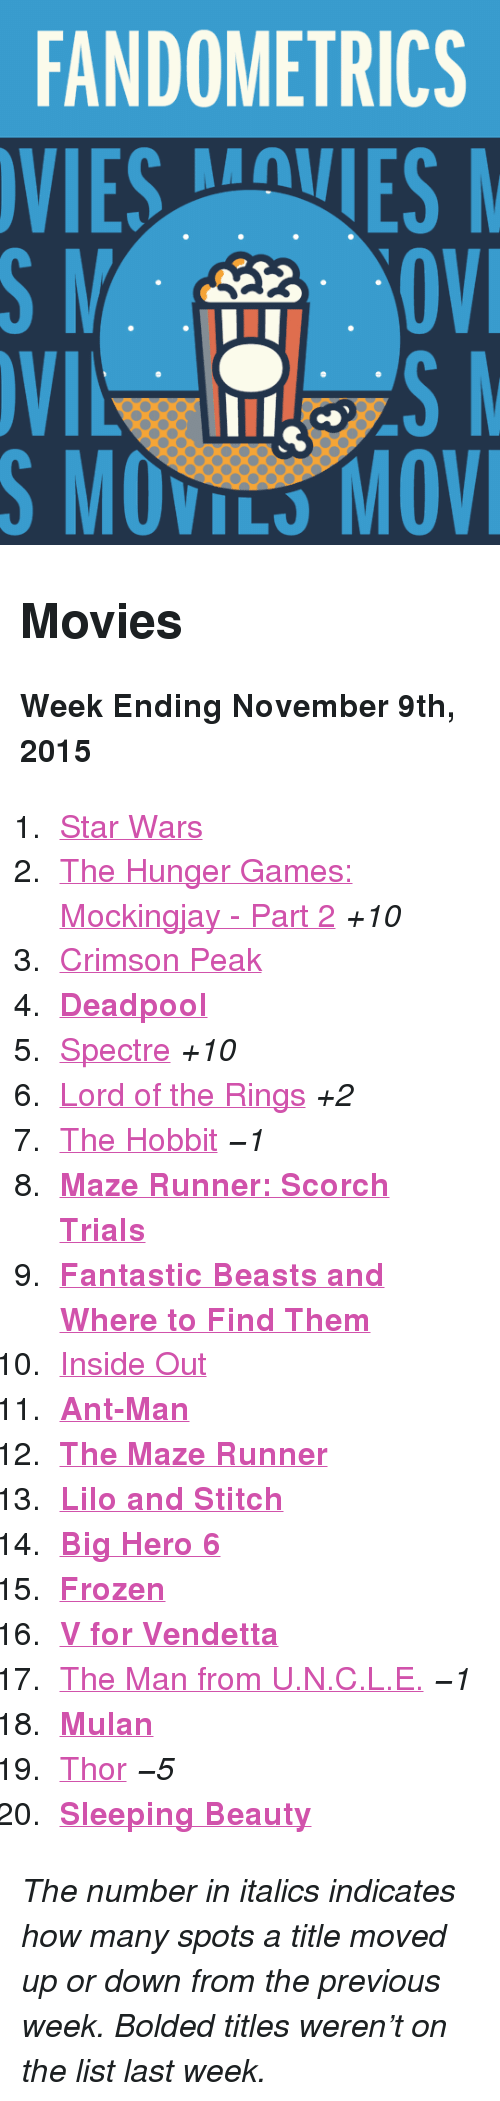 "ant man: FANDOMETRICS  VIESVES  S MOVILS MOV <h2>Movies</h2><p><b>Week Ending November 9th, 2015</b></p><ol><li><a href=""http://www.tumblr.com/search/star%20wars"">Star Wars</a></li>  <li><a href=""http://www.tumblr.com/search/mockingjay"">The Hunger Games: Mockingjay - Part 2</a> <i>+10</i></li>  <li><a href=""http://www.tumblr.com/search/crimson%20peak"">Crimson Peak</a></li>  <li><b><a href=""http://www.tumblr.com/search/deadpool"">Deadpool</a> </b></li>  <li><a href=""http://www.tumblr.com/search/spectre"">Spectre</a> <i>+10</i></li>  <li><a href=""http://www.tumblr.com/search/lotr"">Lord of the Rings</a> <i>+2</i></li>  <li><a href=""http://www.tumblr.com/search/the%20hobbit"">The Hobbit</a> <i>−1</i></li>  <li><a href=""http://www.tumblr.com/search/the%20scorch%20trials""><b>Maze Runner: Scorch Trials</b></a></li>  <li><a href=""http://www.tumblr.com/search/fantastic%20beasts%20and%20where%20to%20find%20them""><b>Fantastic Beasts and Where to Find Them</b></a></li>  <li><a href=""http://www.tumblr.com/search/inside%20out"">Inside Out</a></li>  <li><a href=""http://www.tumblr.com/search/ant%20man""><b>Ant-Man</b></a></li>  <li><a href=""http://www.tumblr.com/search/the%20maze%20runner""><b>The Maze Runner</b></a></li>  <li><a href=""http://www.tumblr.com/search/lilo%20and%20stitch""><b>Lilo and Stitch</b></a></li>  <li><a href=""http://www.tumblr.com/search/big%20hero%206""><b>Big Hero 6</b></a></li>  <li><a href=""http://www.tumblr.com/search/frozen""><b>Frozen</b></a></li>  <li><a href=""http://www.tumblr.com/search/v%20for%20vendetta""><b>V for Vendetta</b></a></li>  <li><a href=""http://www.tumblr.com/search/the%20man%20from%20uncle"">The Man from U.N.C.L.E.</a> <i>−1</i></li>  <li><a href=""http://www.tumblr.com/search/mulan""><b>Mulan</b></a></li>  <li><a href=""http://www.tumblr.com/search/thor"">Thor</a> <i>−5</i></li>  <li><a href=""http://www.tumblr.com/search/sleeping%20beauty""><b>Sleeping Beauty</b></a></li></ol><p><i>The number in italics indicates how many spots a title moved up or down from the previous week. Bolded titles weren't on the list last week.</i></p>"